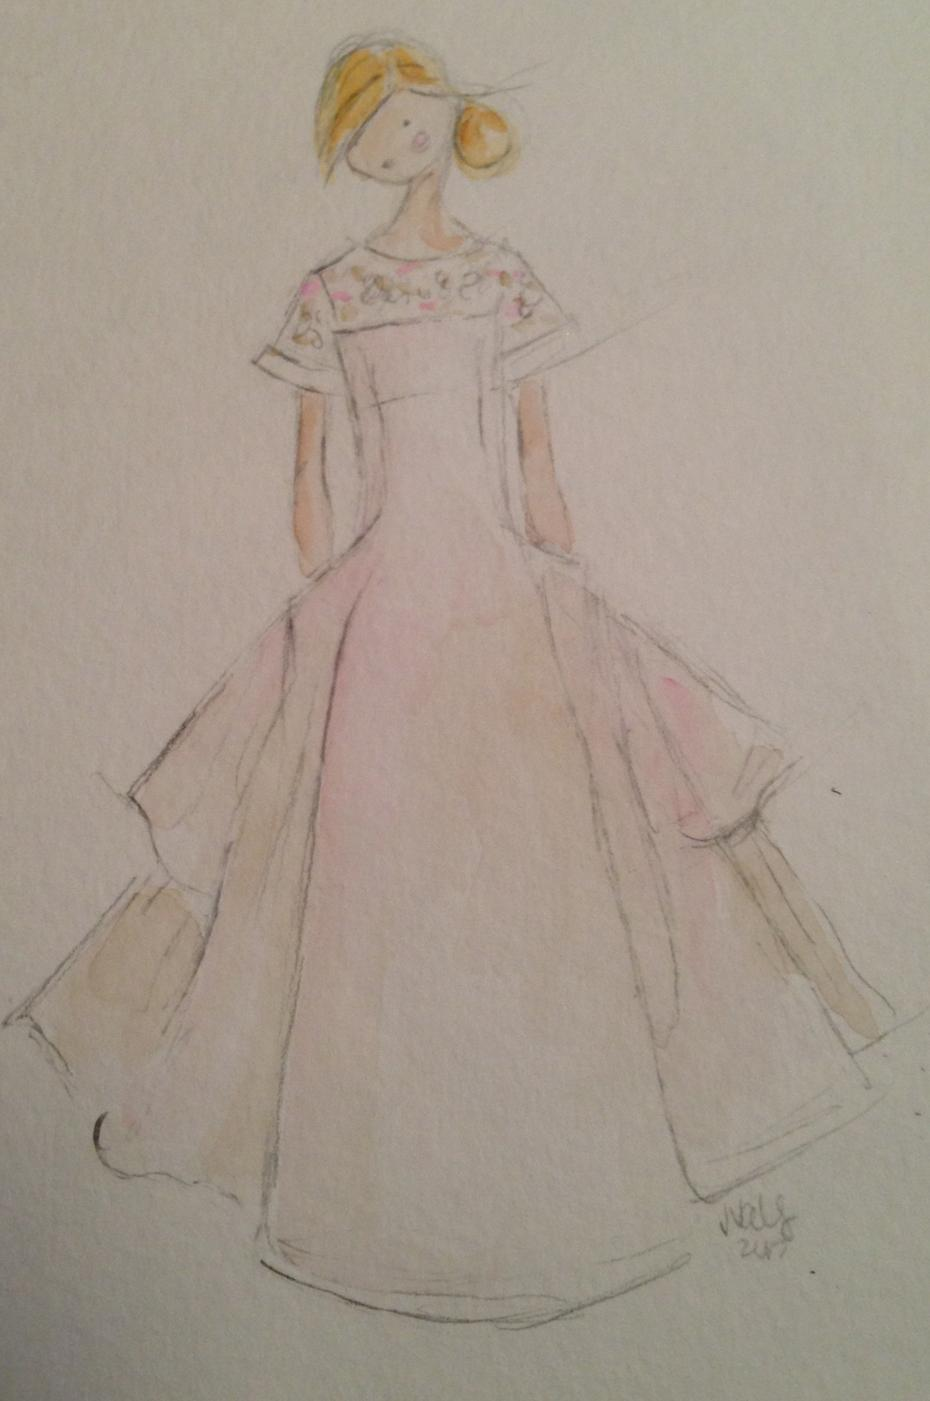 FINAL WATERCOLORS! - image 5 - student project